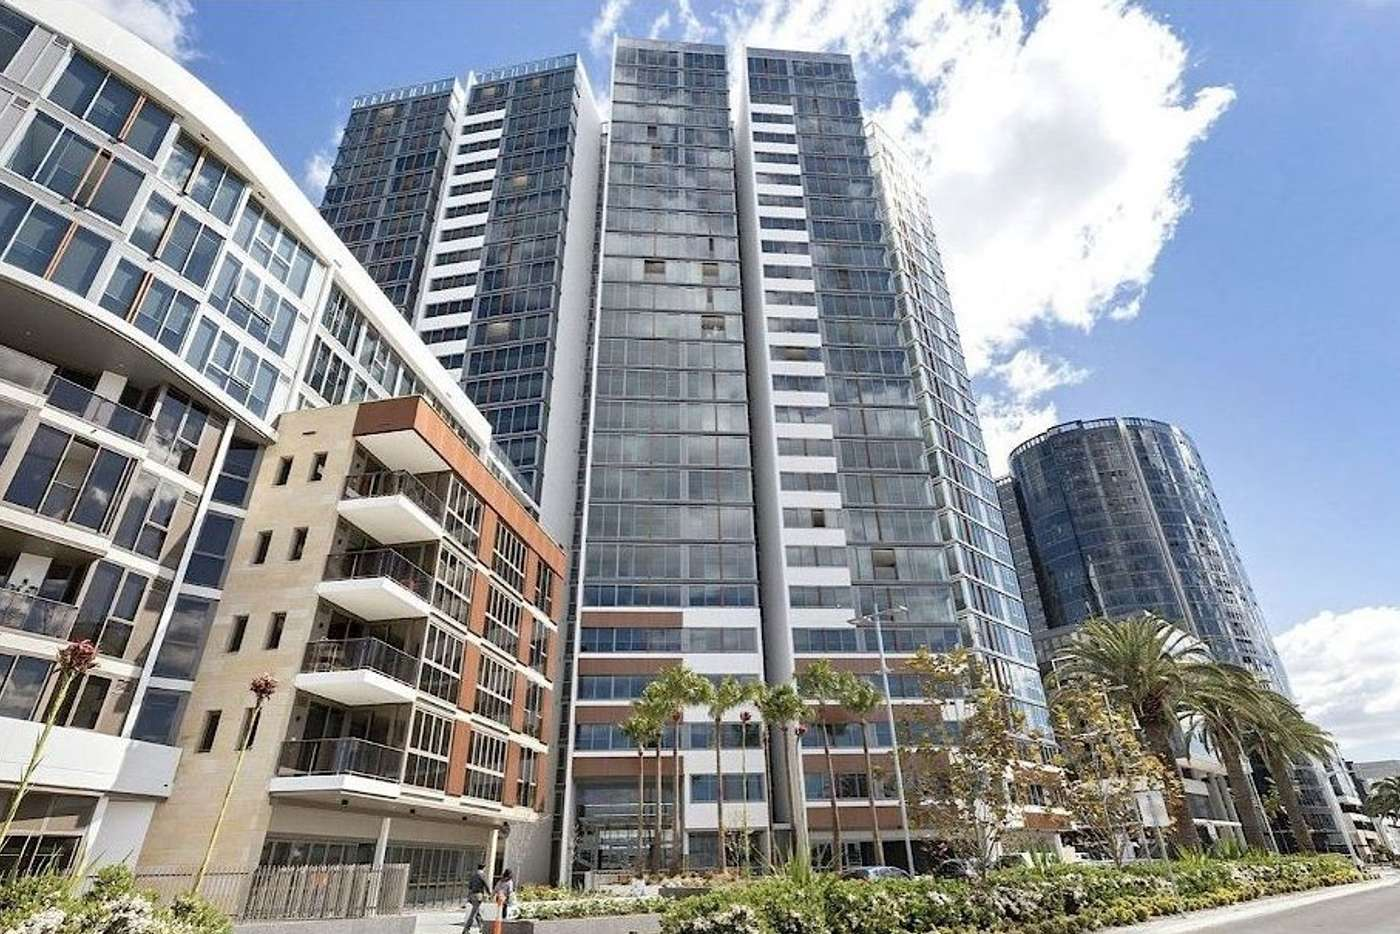 Main view of Homely apartment listing, 613/18 Footbridge Boulevard, Wentworth Point NSW 2127